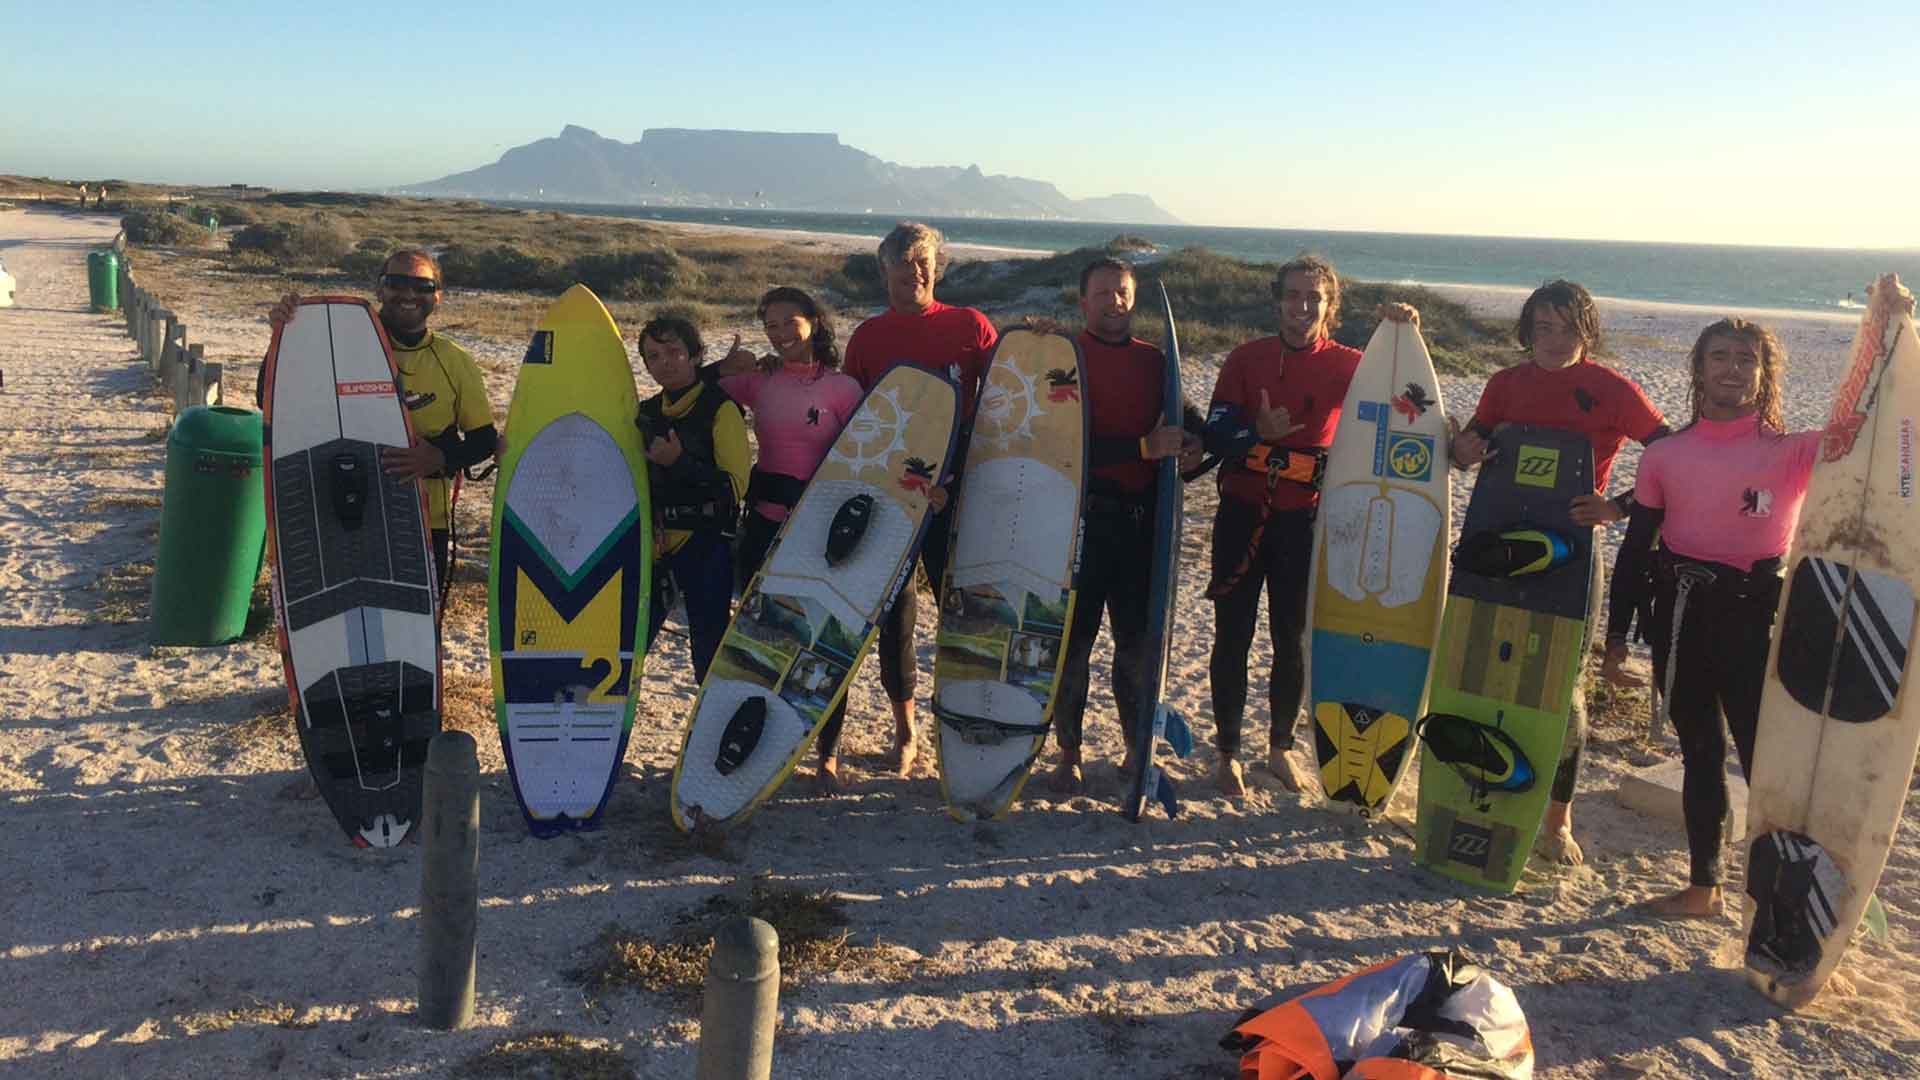 wave_kitesurfing_cape_town_5a